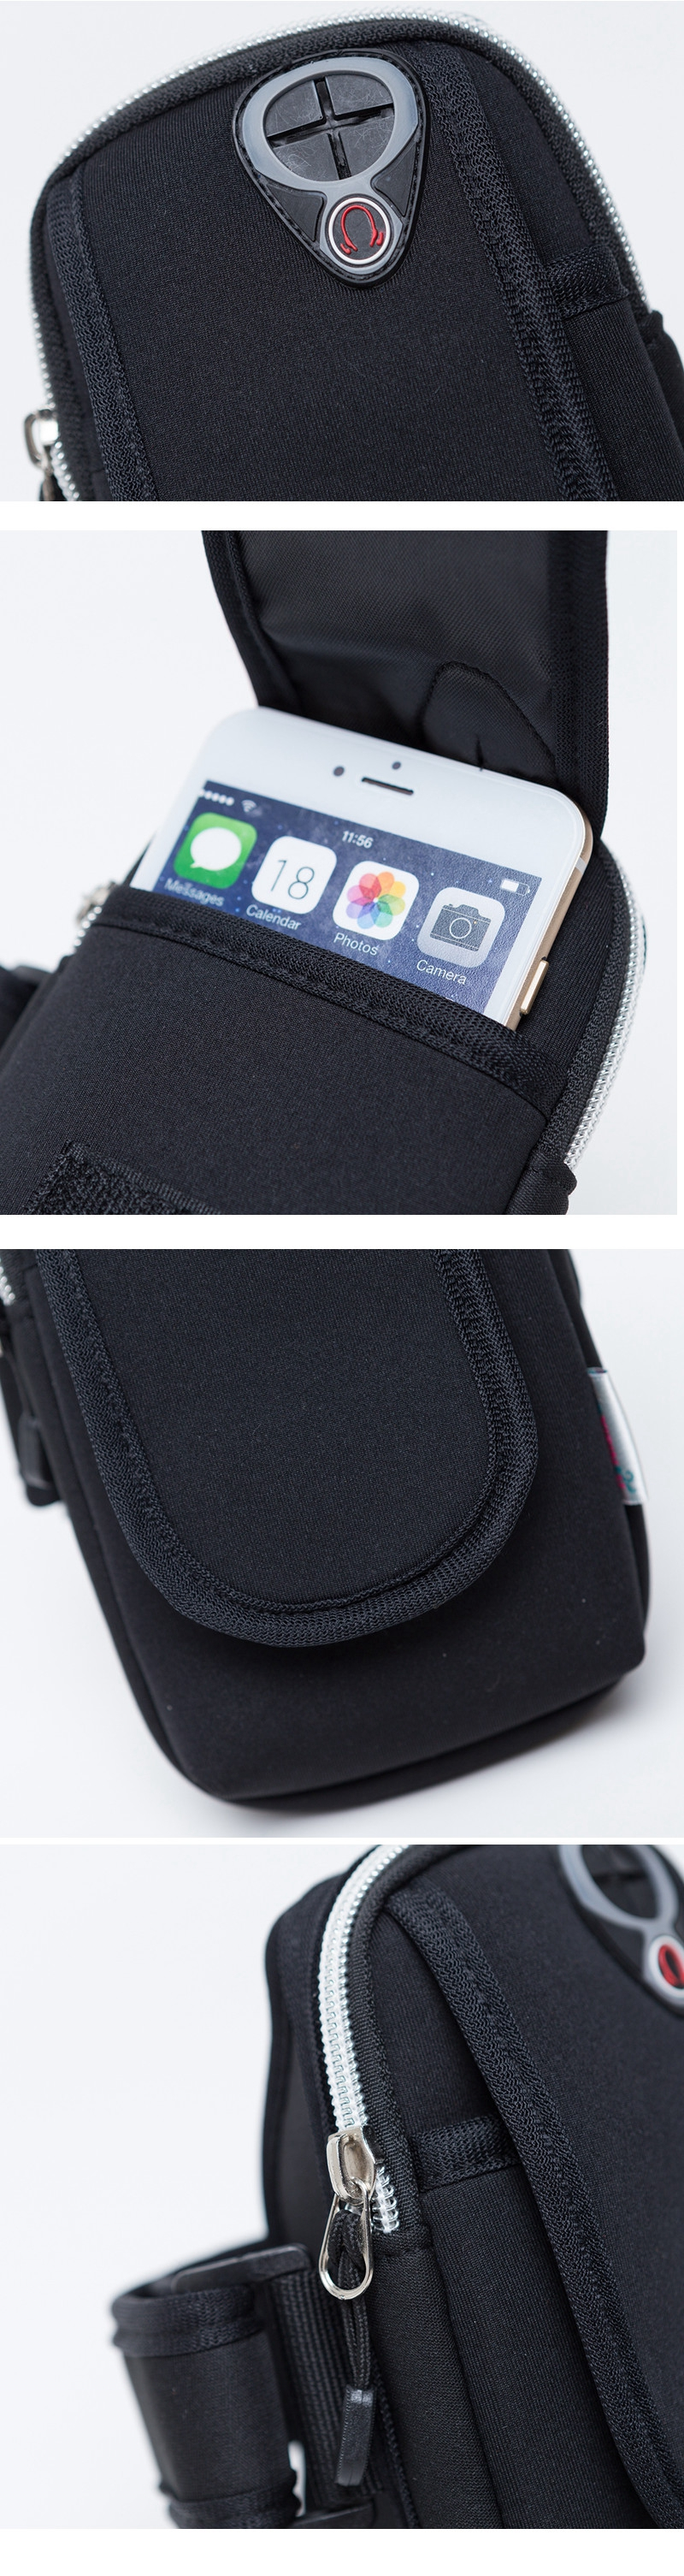 Waterproof Sports Running Arm Band Holder Pouch Case for iPhone Samsung Mobile Phone Under 4.7 inch